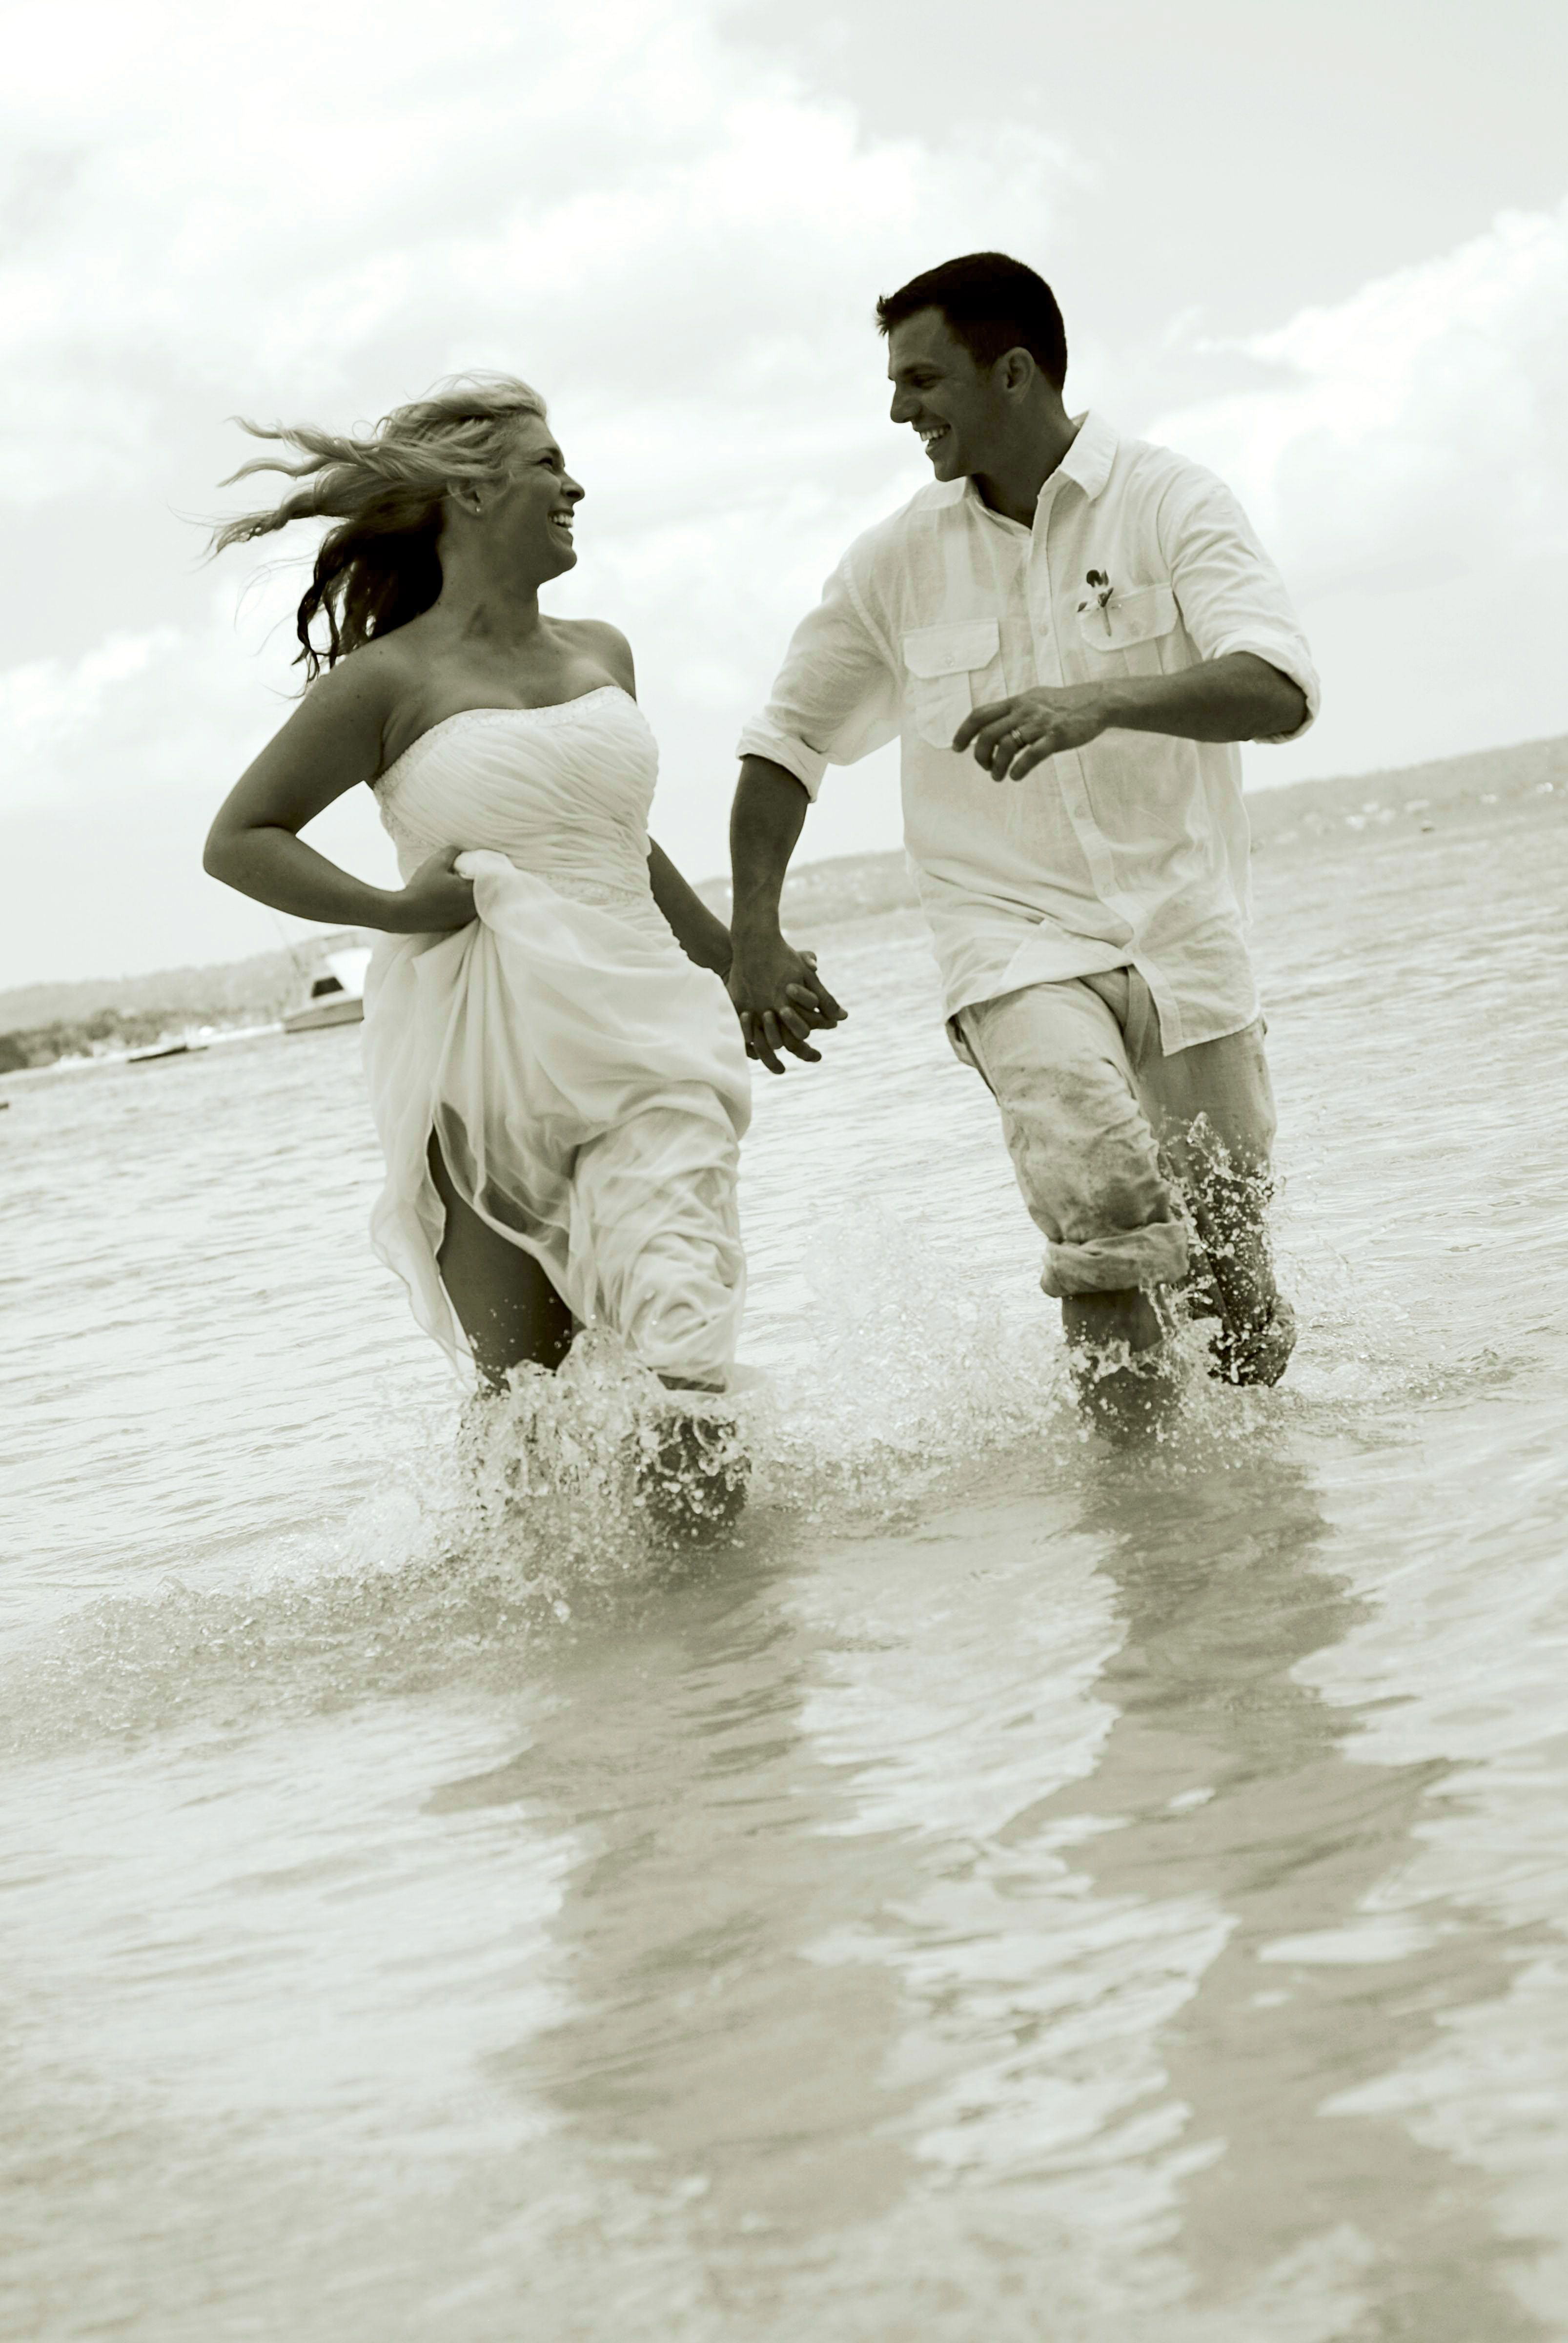 vacationsbyvip.com | What a great Trash the Dress photo idea!